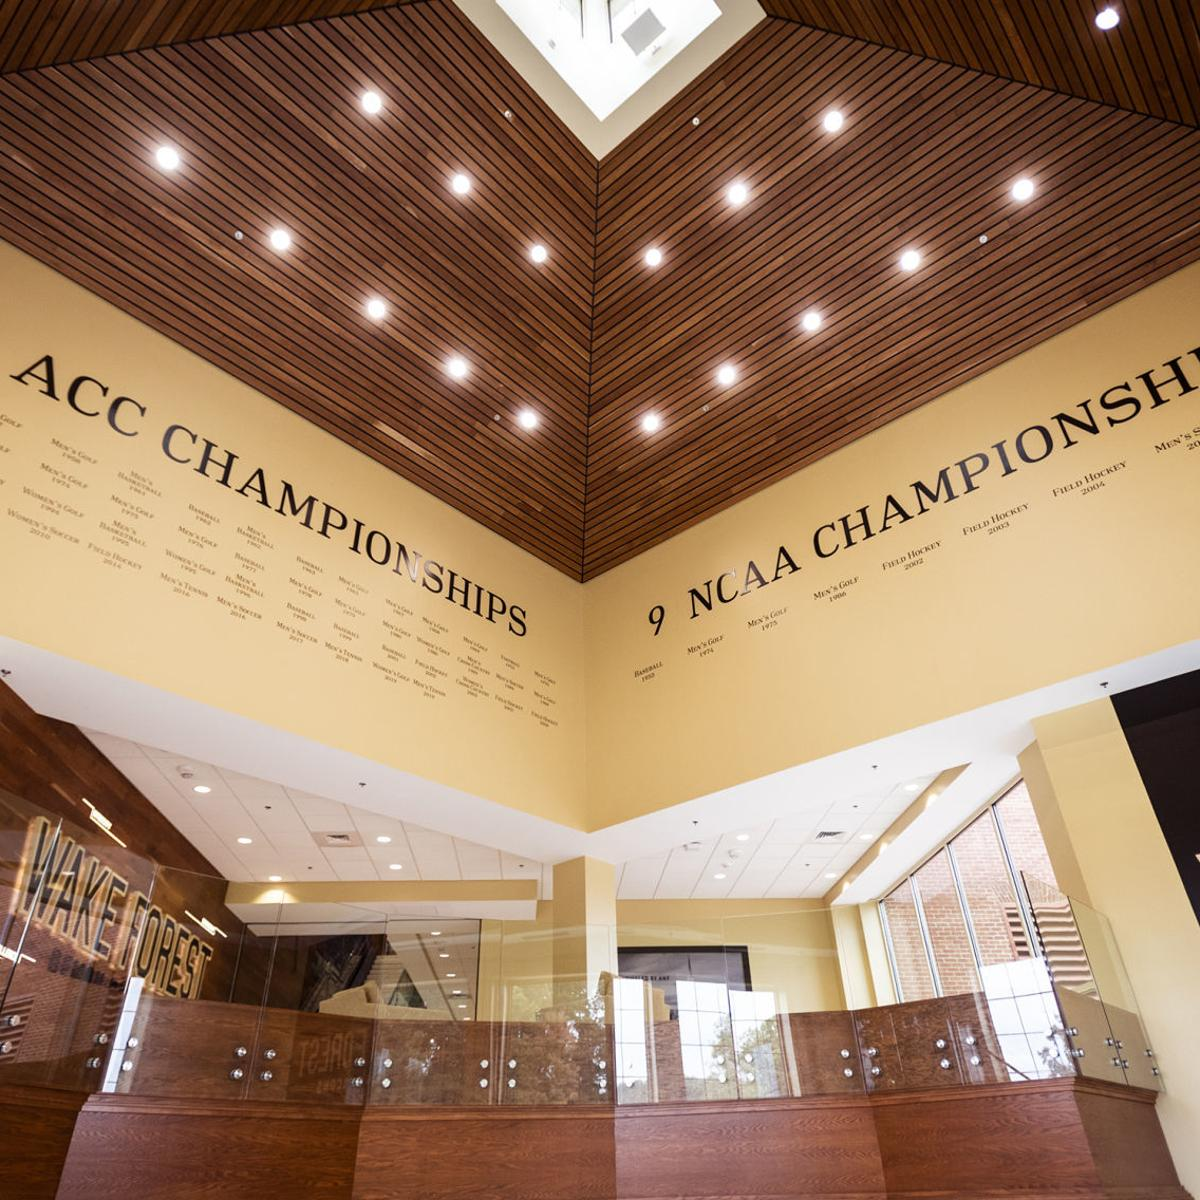 Wake Forest athletics gave a tour of its new on-campus